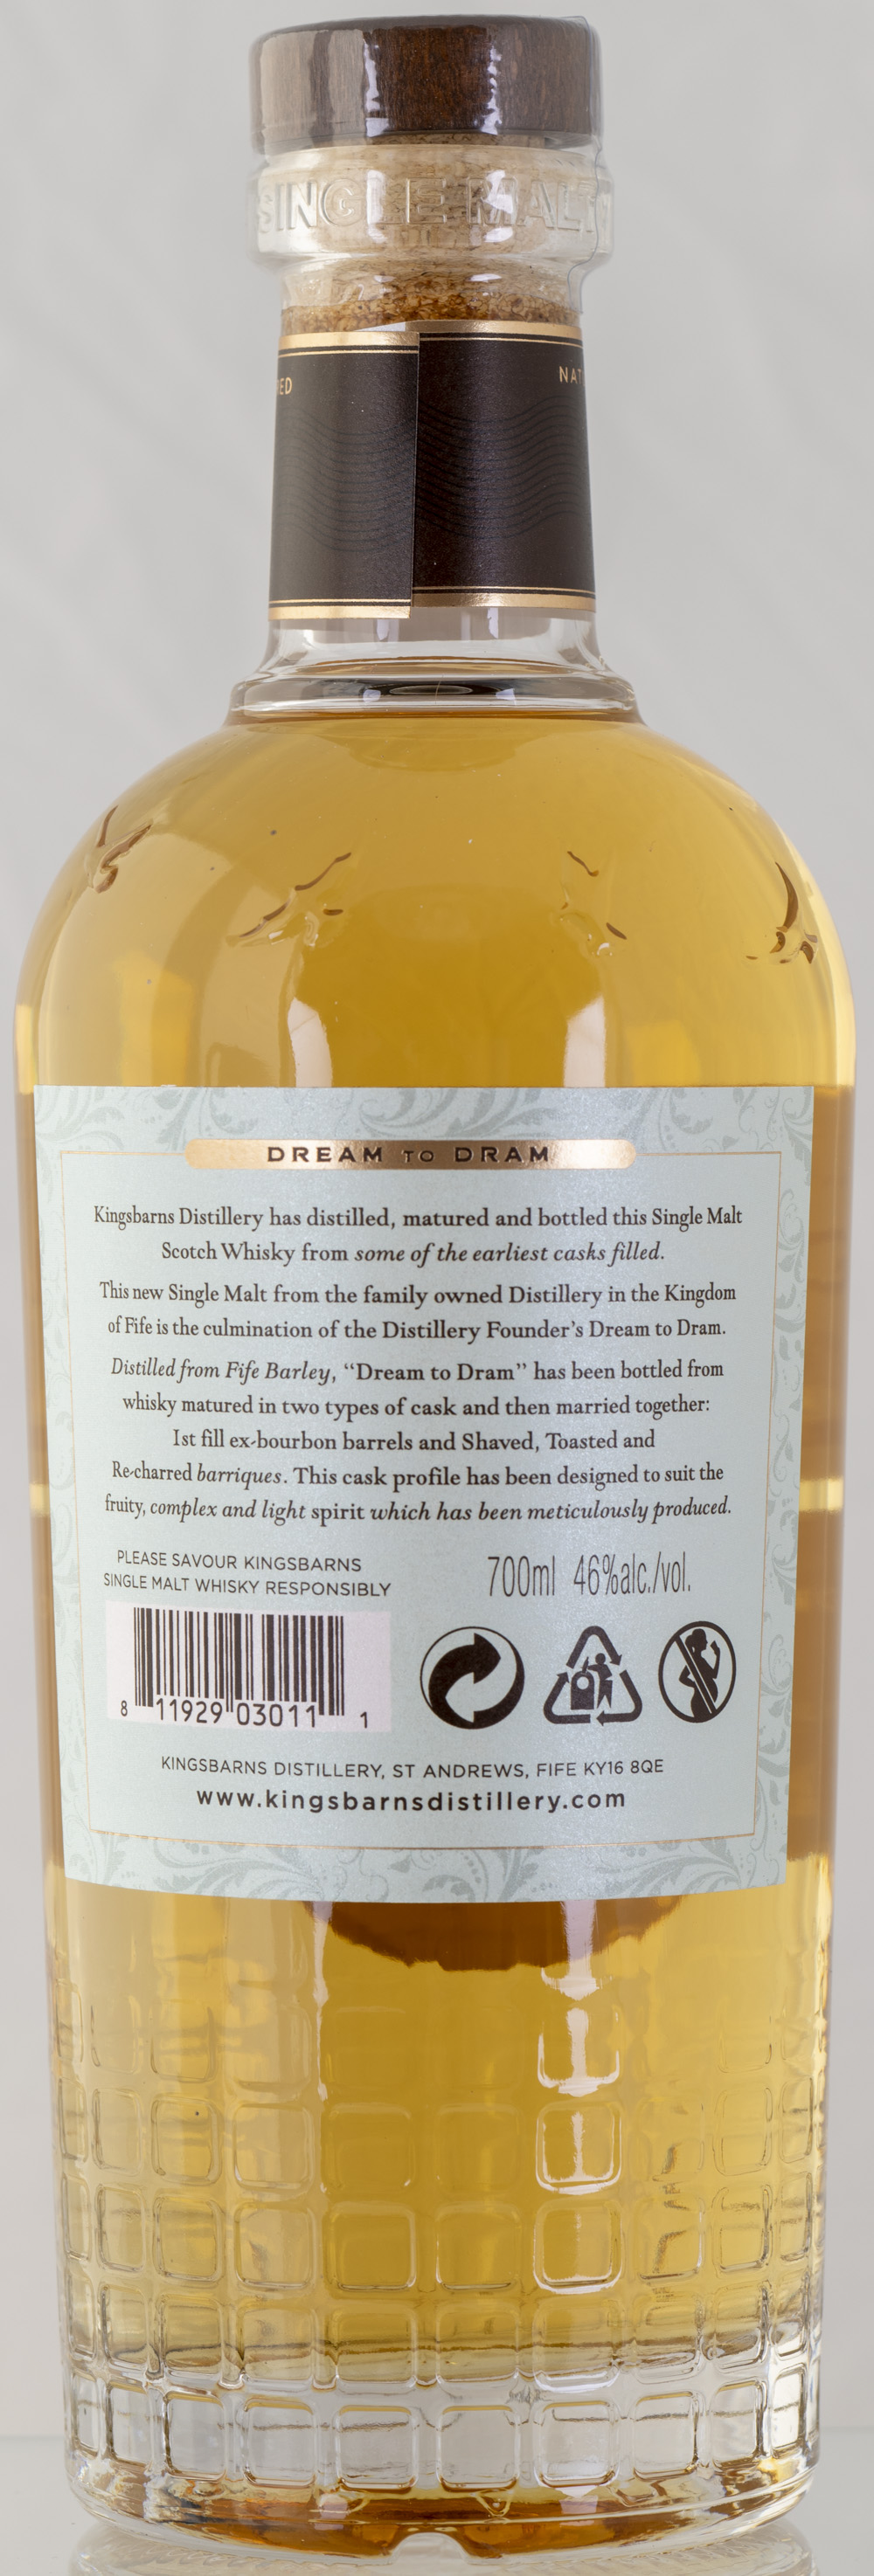 Billede: PHC_2232 - Kingsbarns Dream to Dram - bottle back.jpg